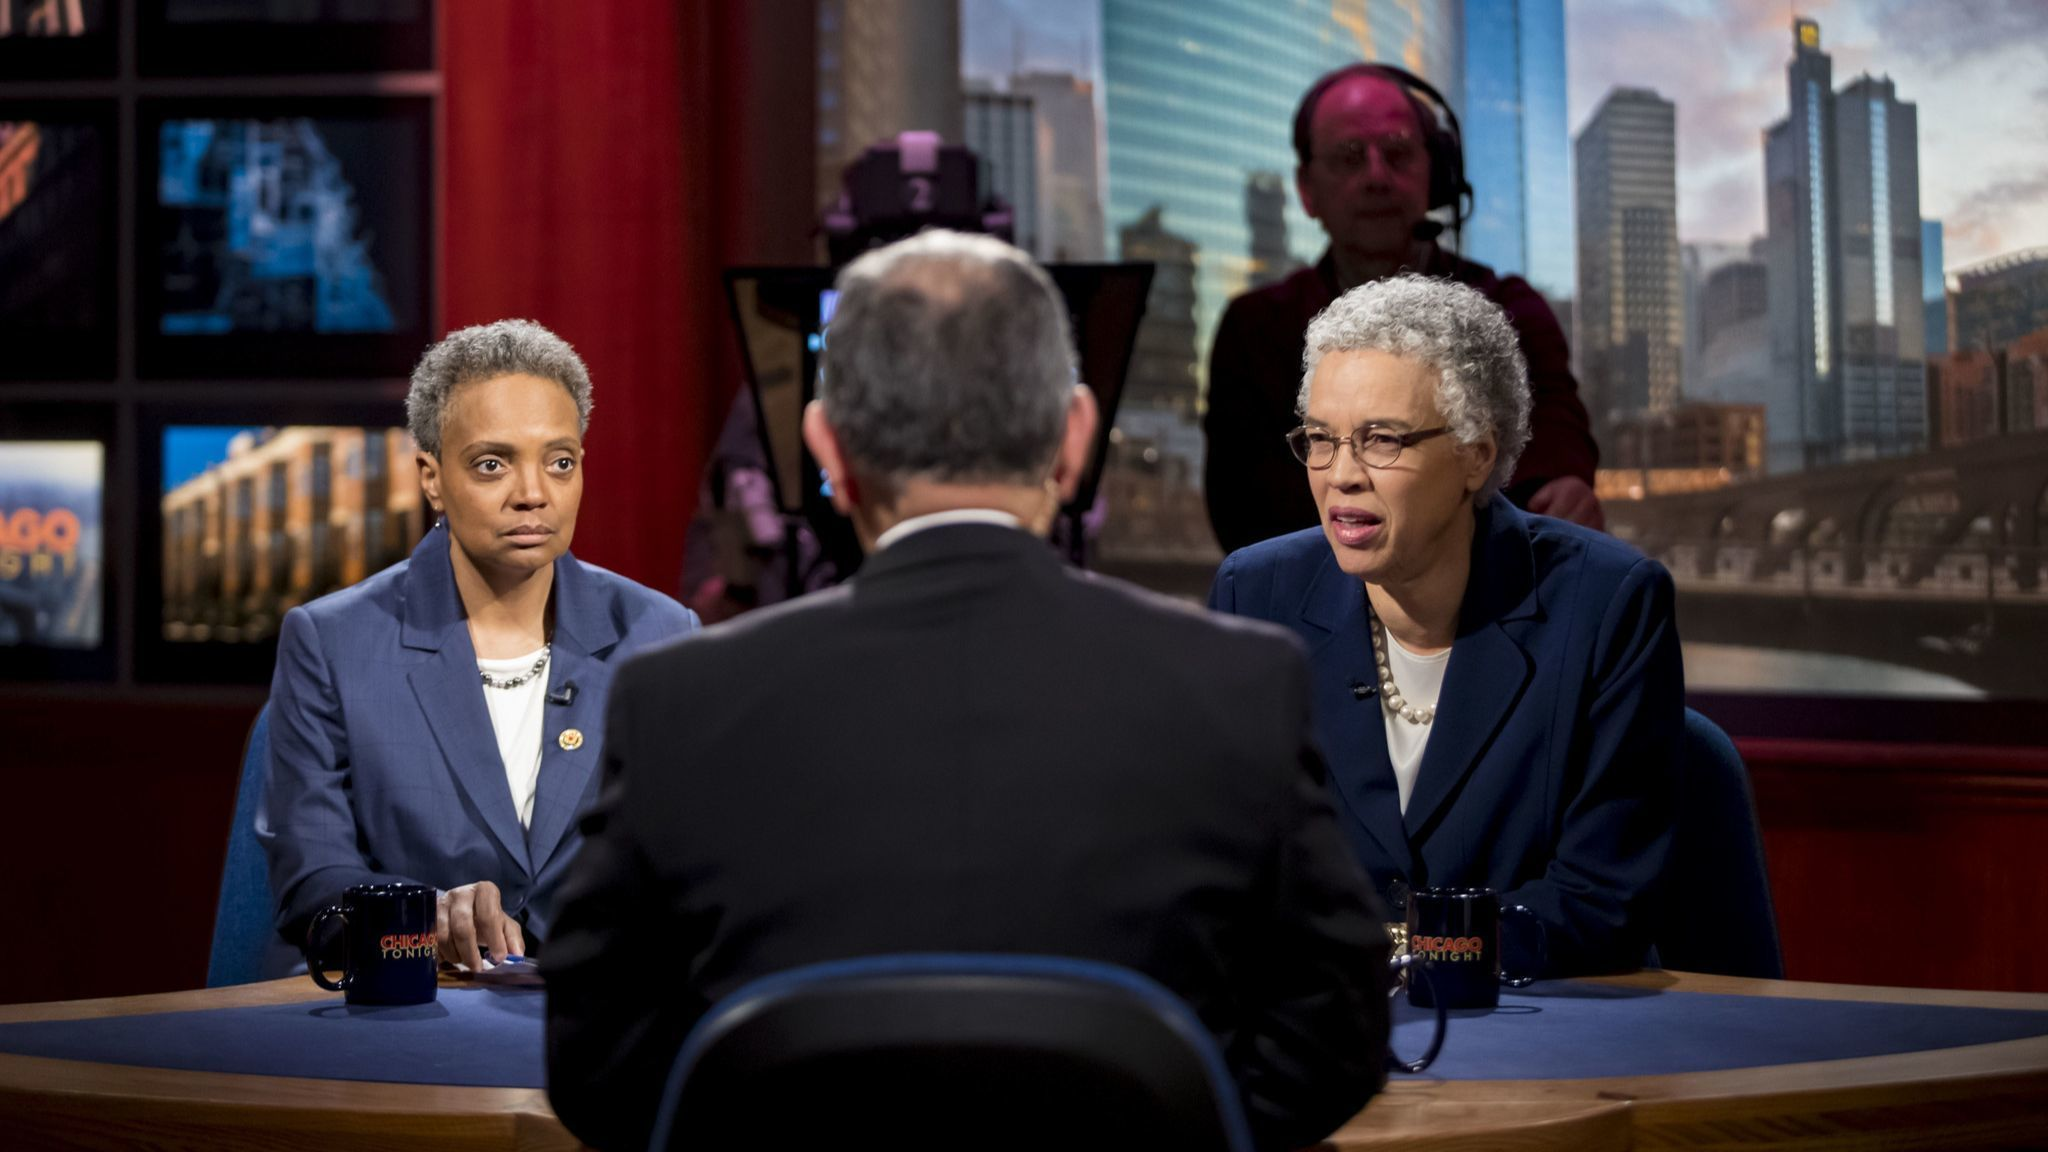 Lori Lightfoot counters Chance the Rapper's criticism during Chicago mayor debate